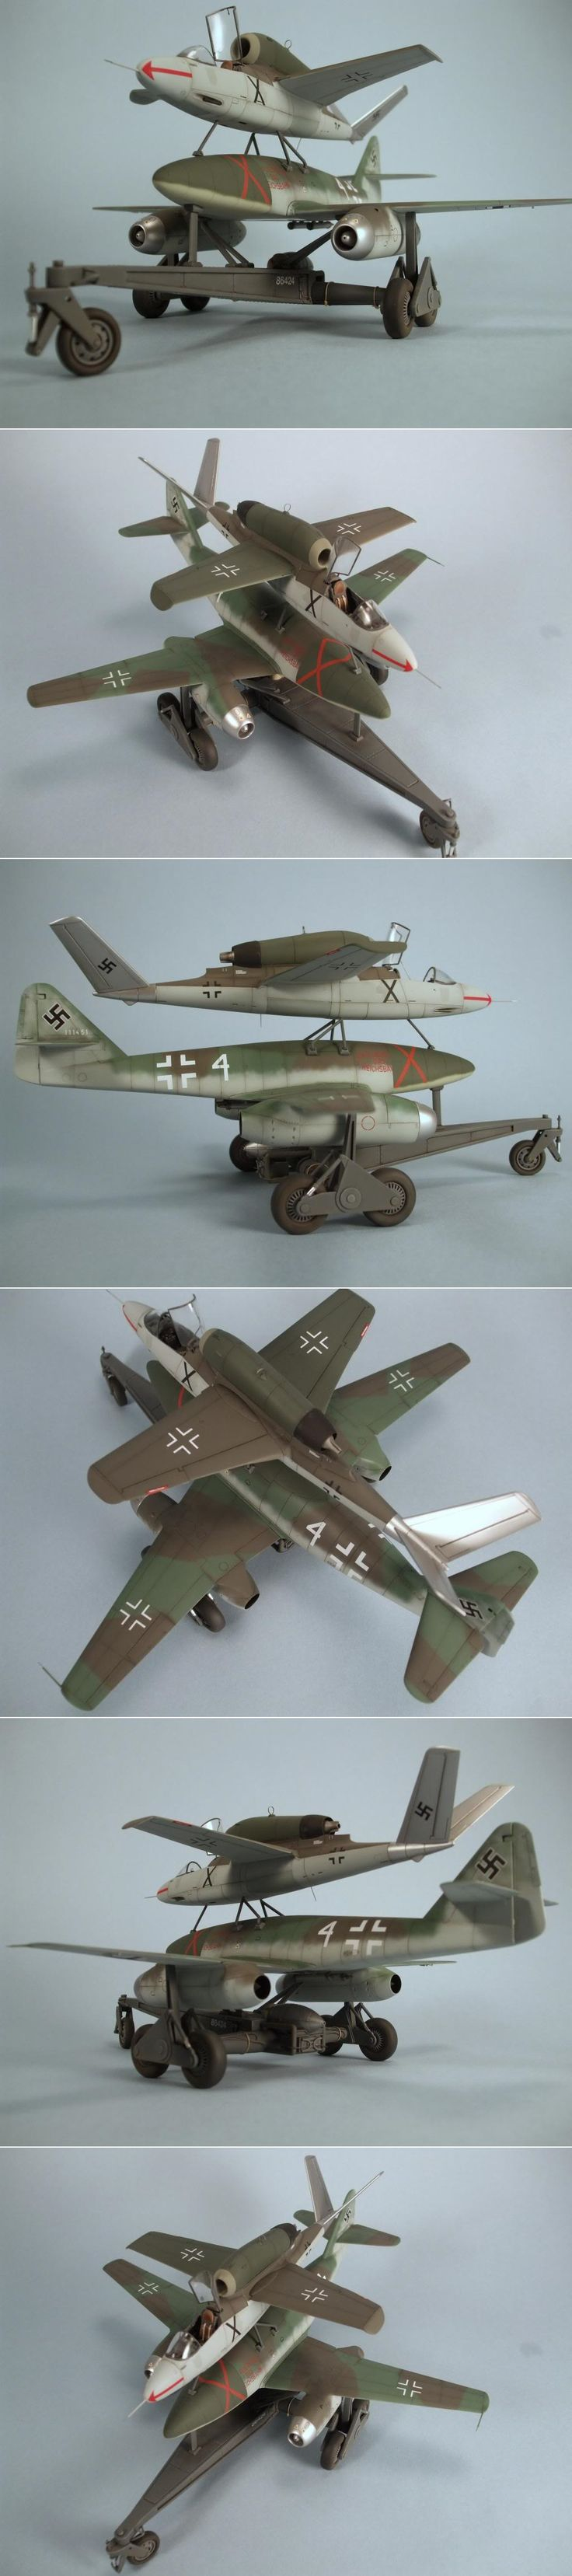 Dragon 1/48 He 162 Mistel - Heinkel He 162, Me 262 reconfigured to a drone aircraft with a new warhead nose cone.